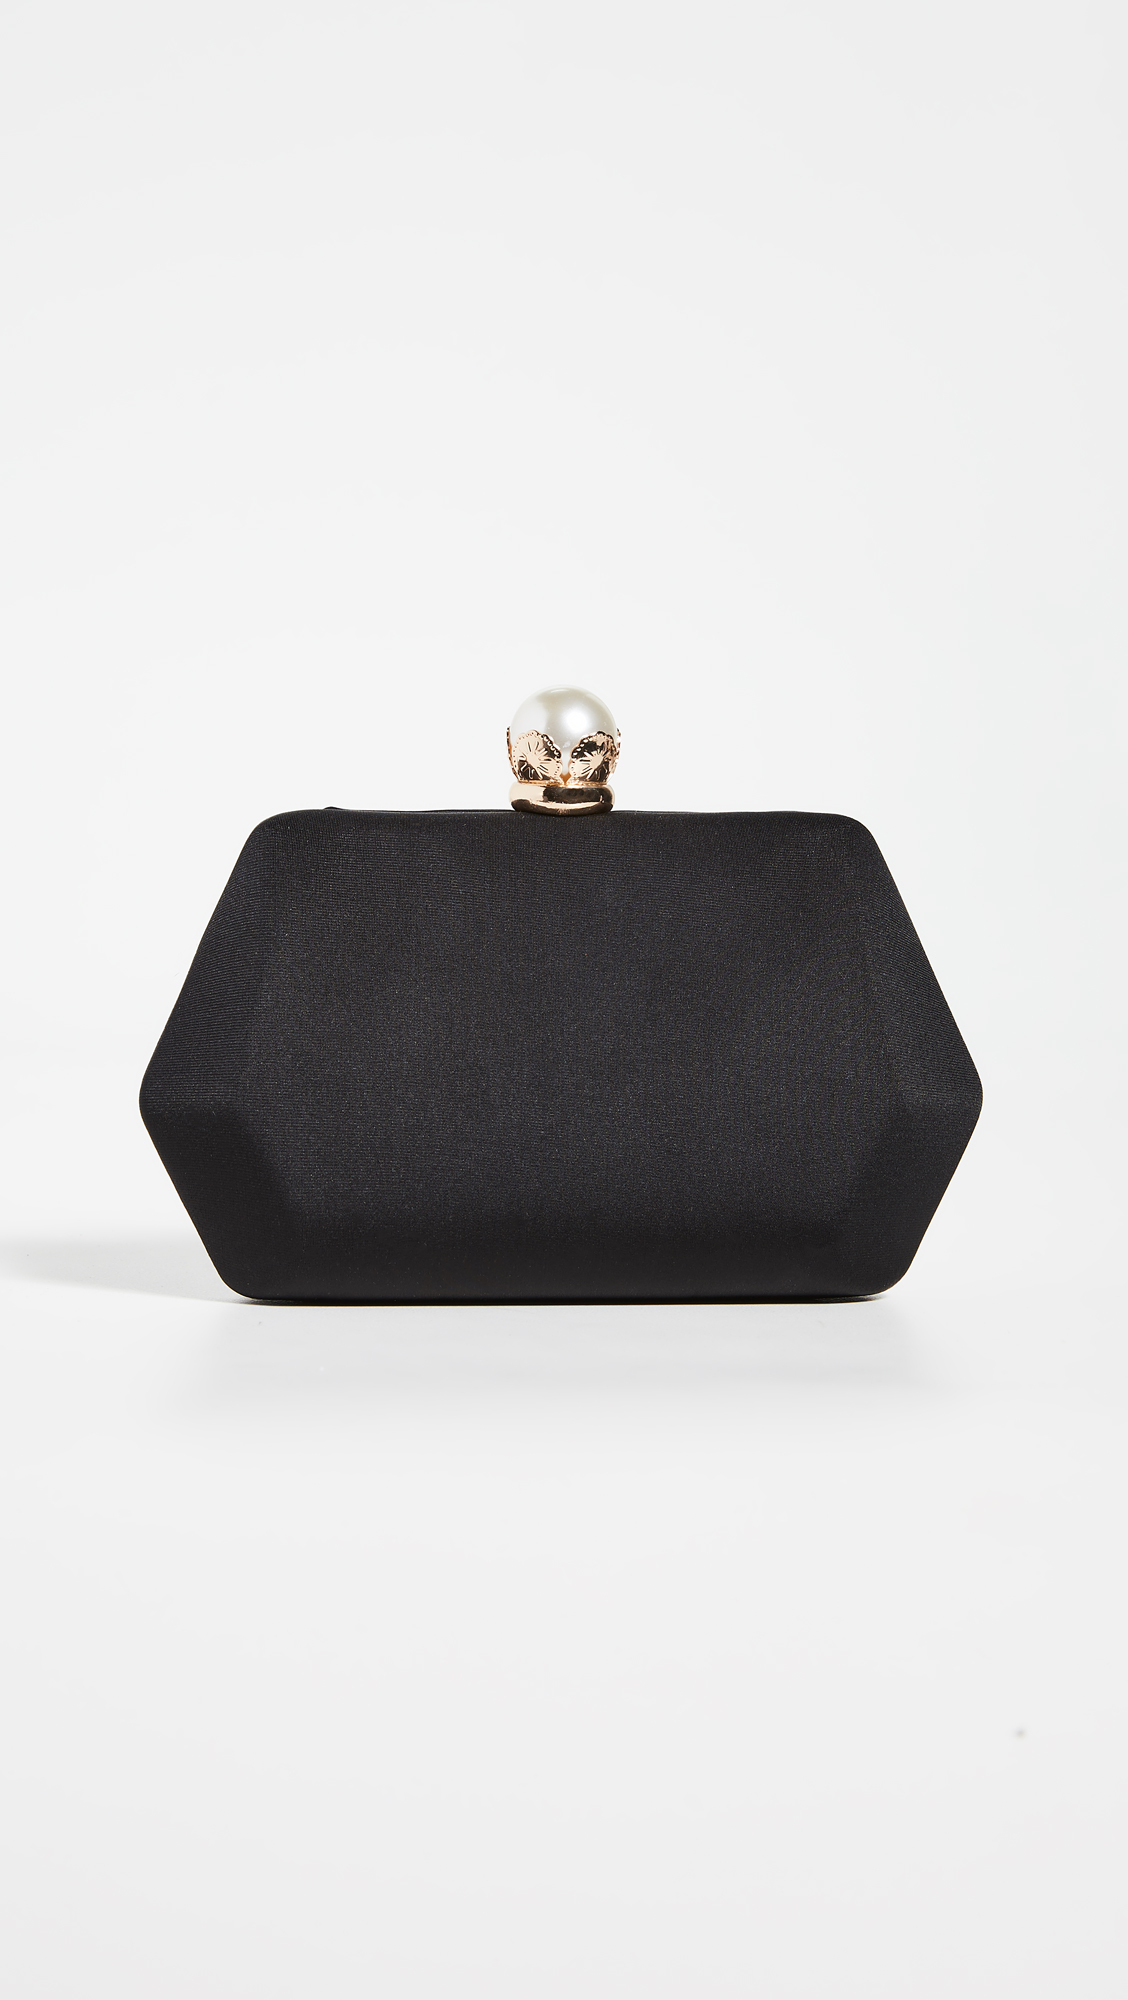 Satin Black Clutch